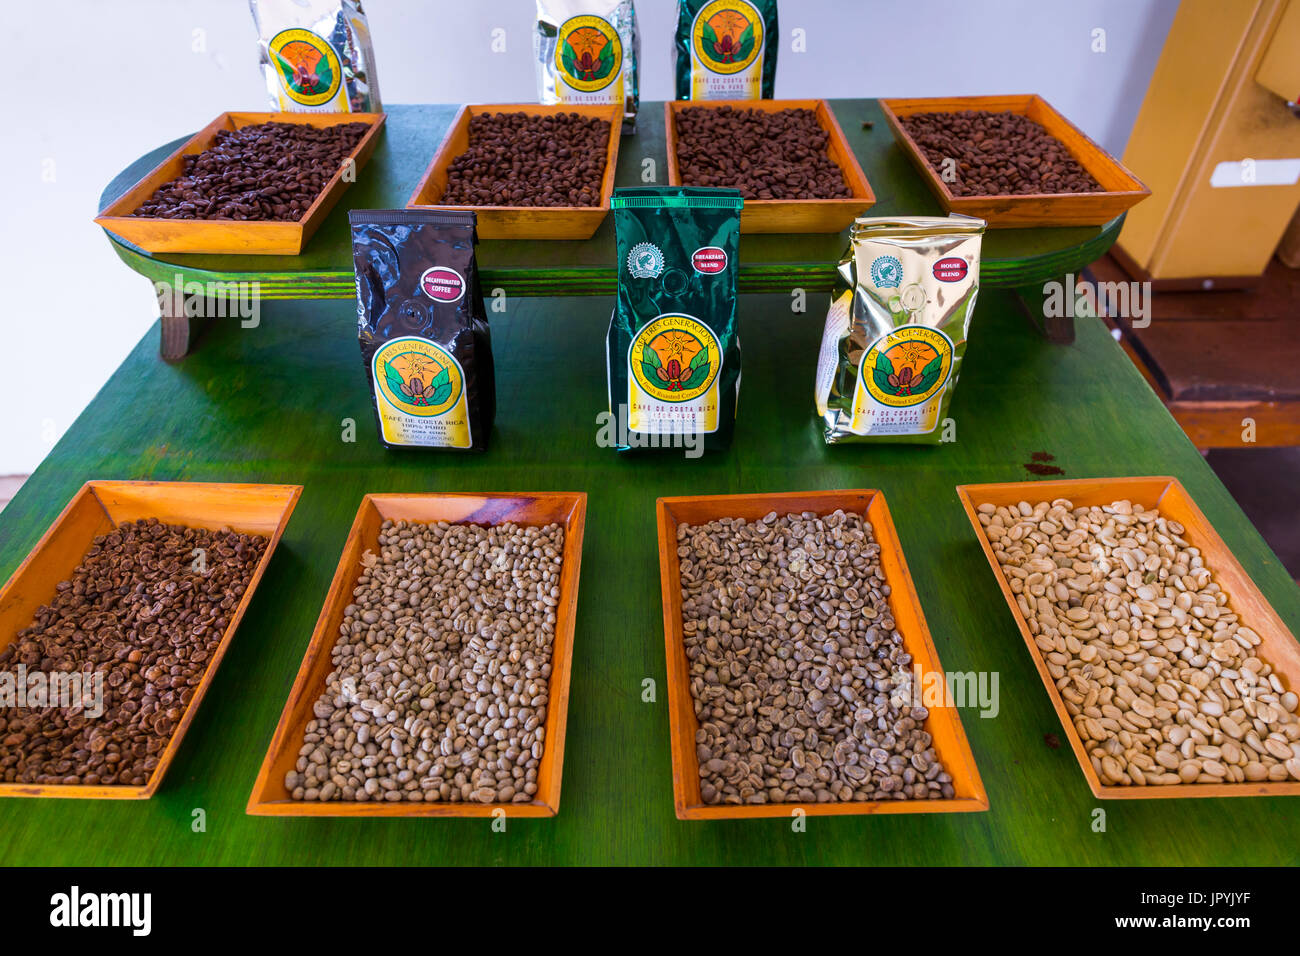 Costa Coffee Arabica Robusta Coffea Arabica Bean Stock Photos And Coffea Arabica Bean